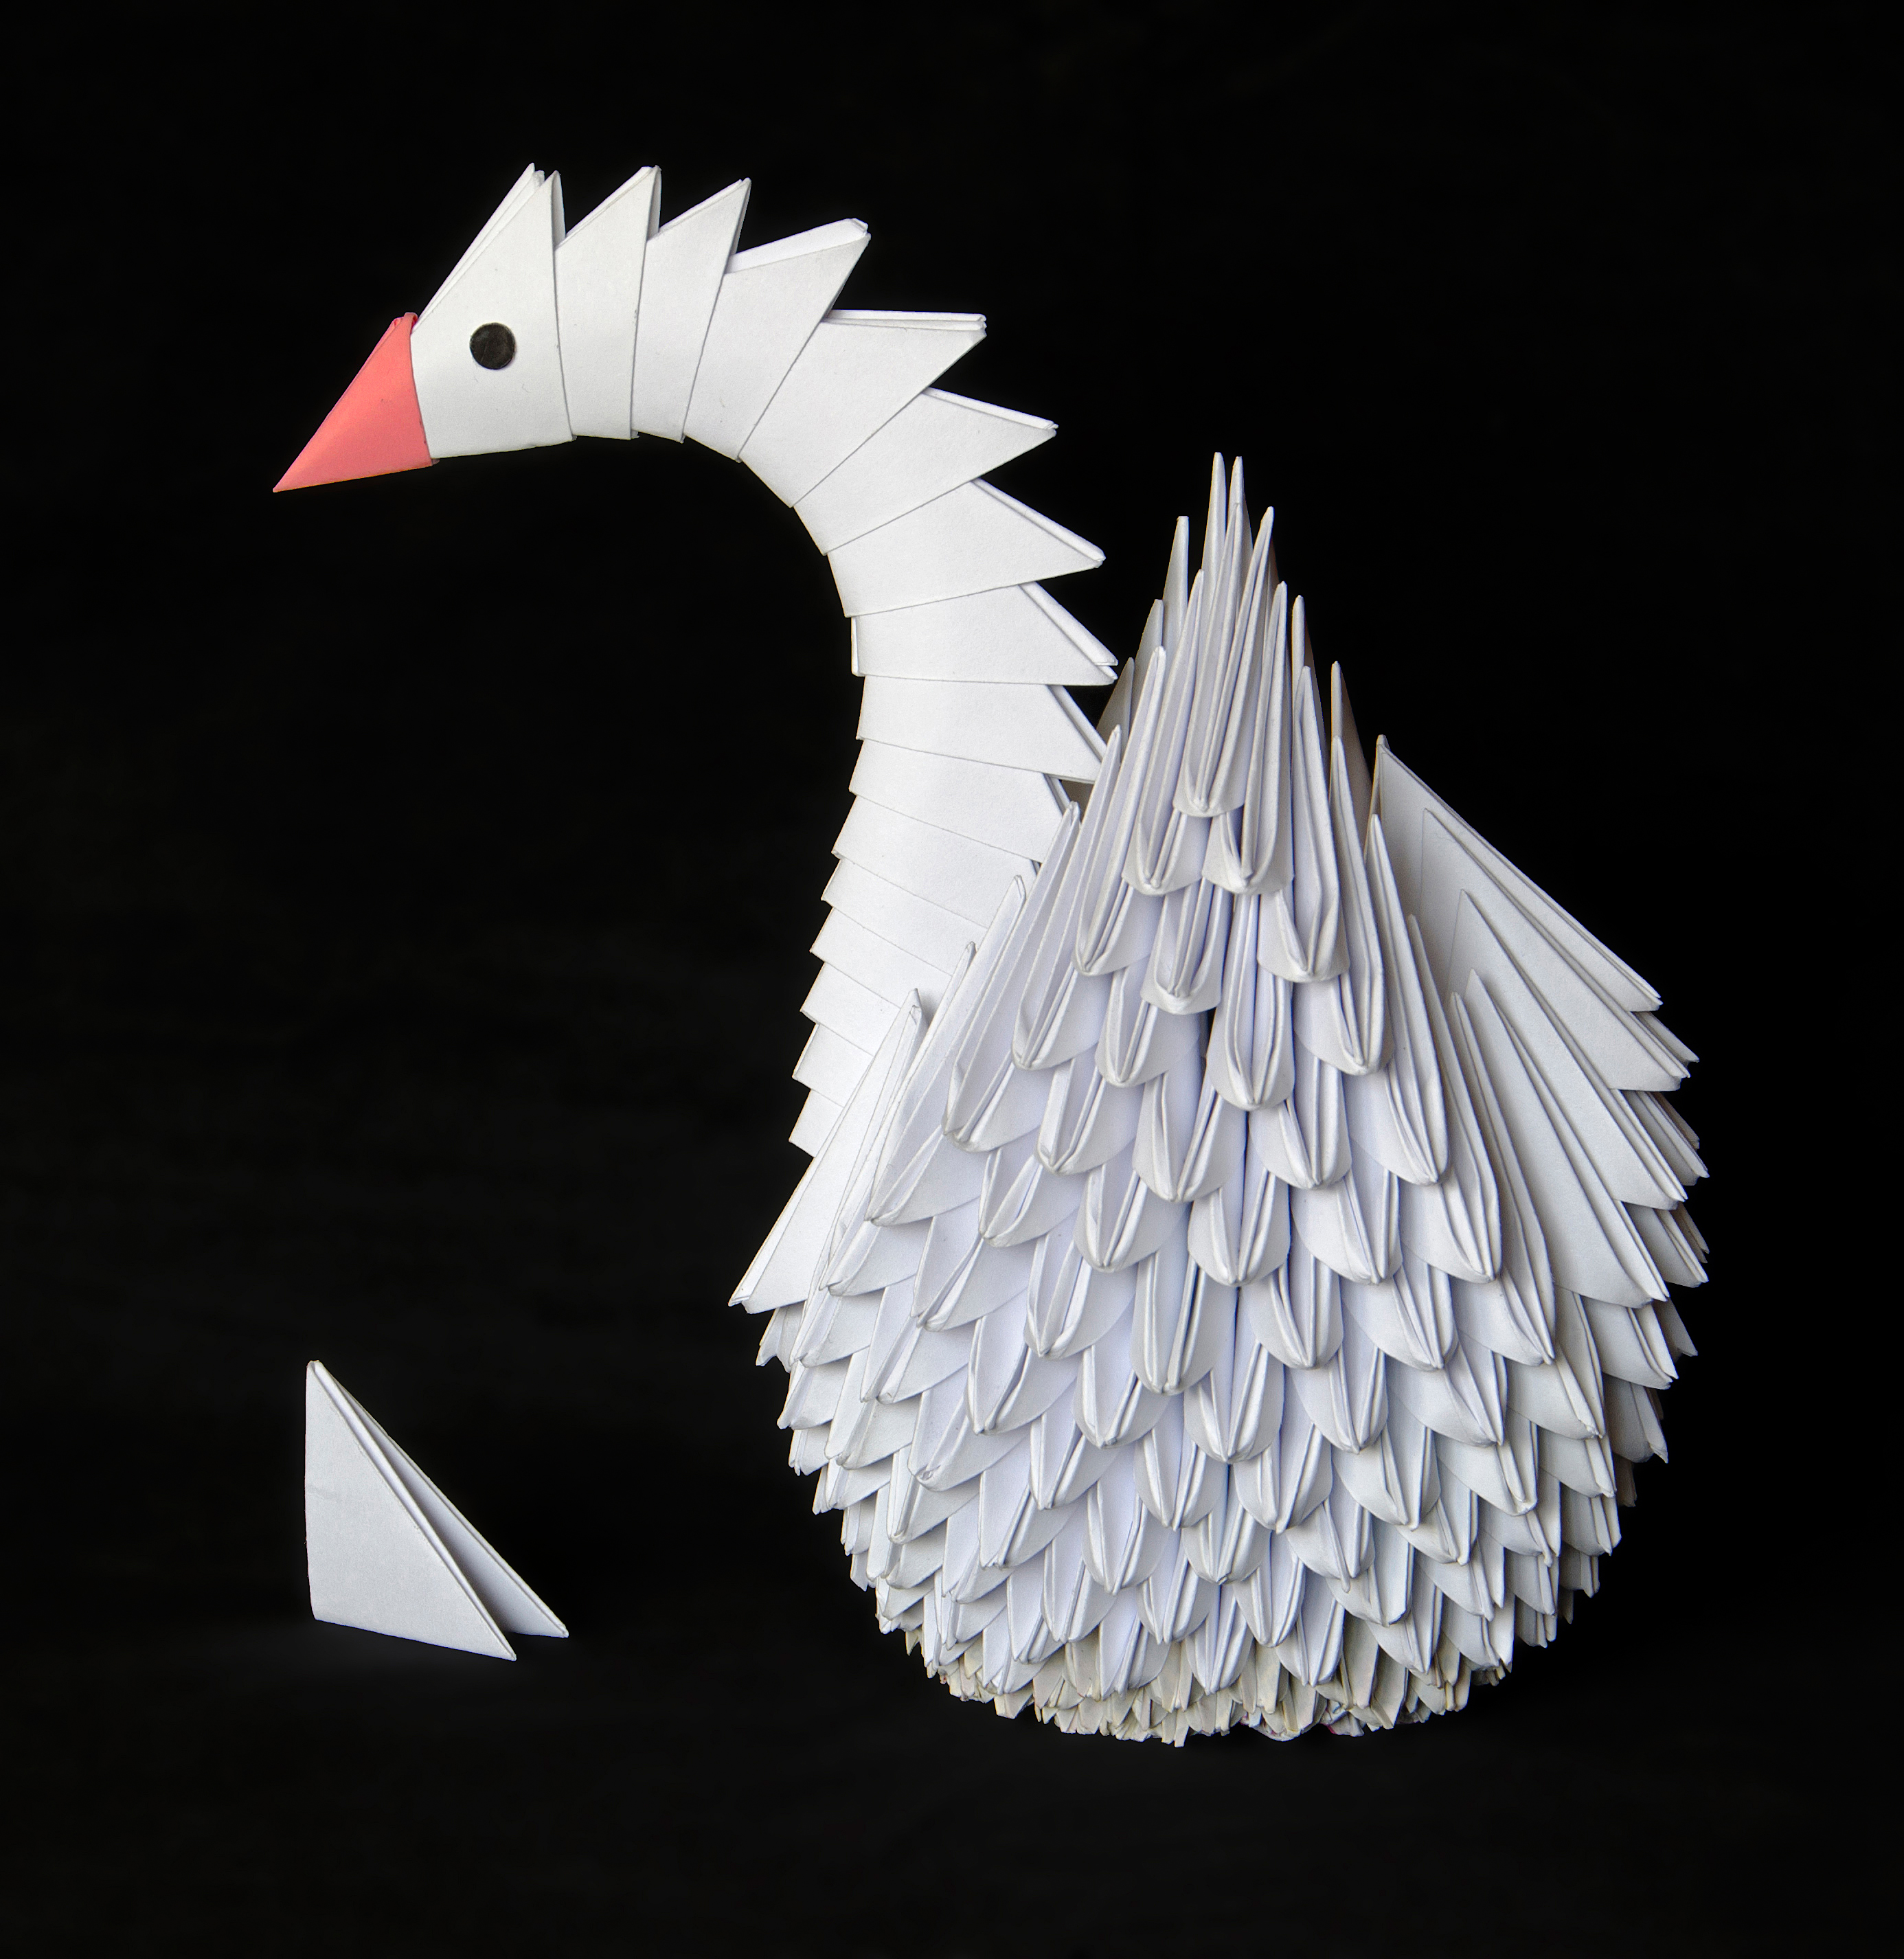 Origami - Folding Instructions | Origami diagrams, Modular origami ... | 2852x2772